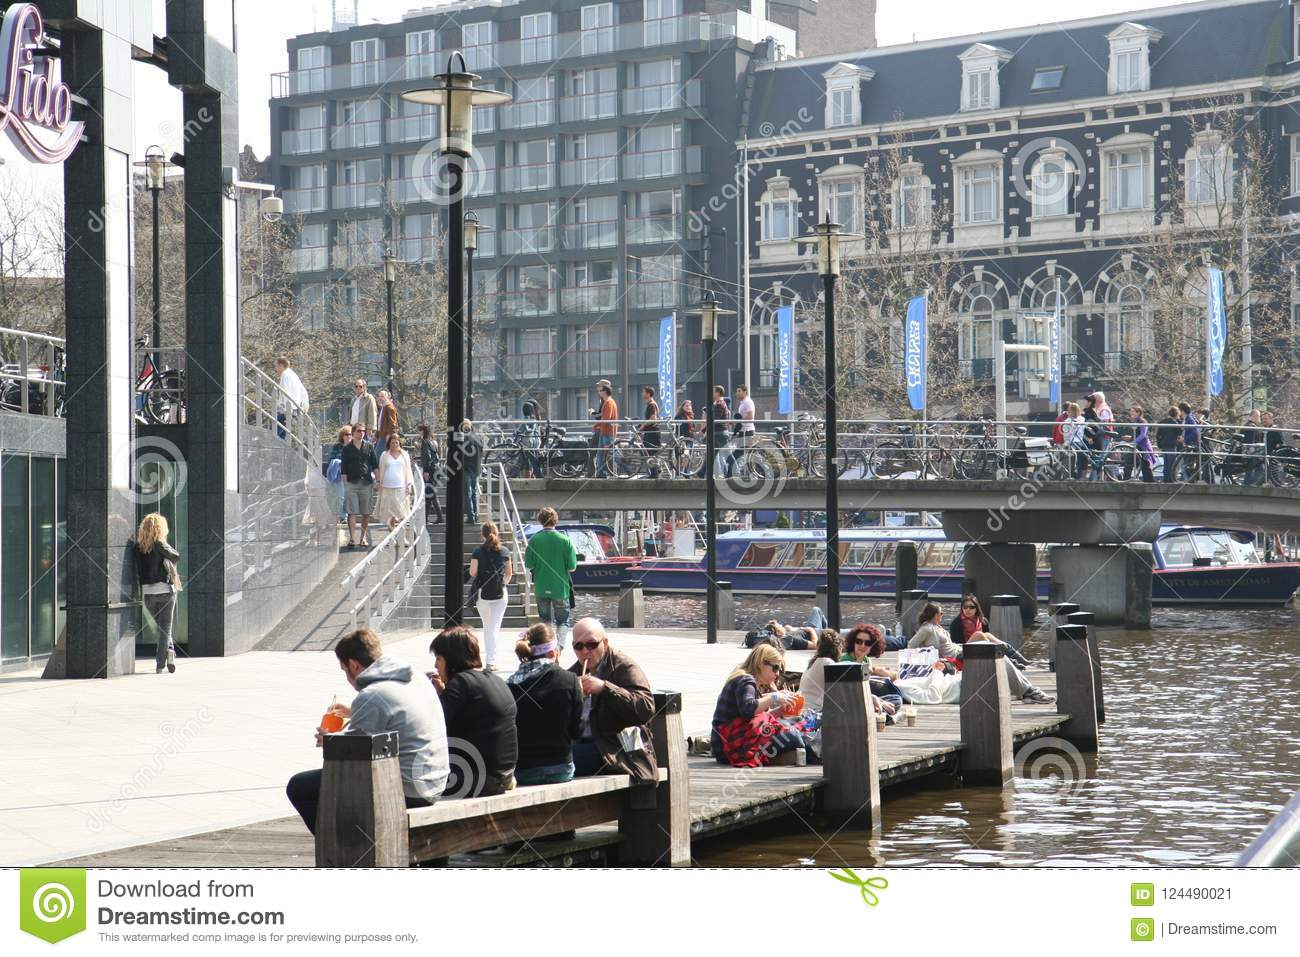 Square in the city. People relax near the water and in the cafe. A warm day in the city.